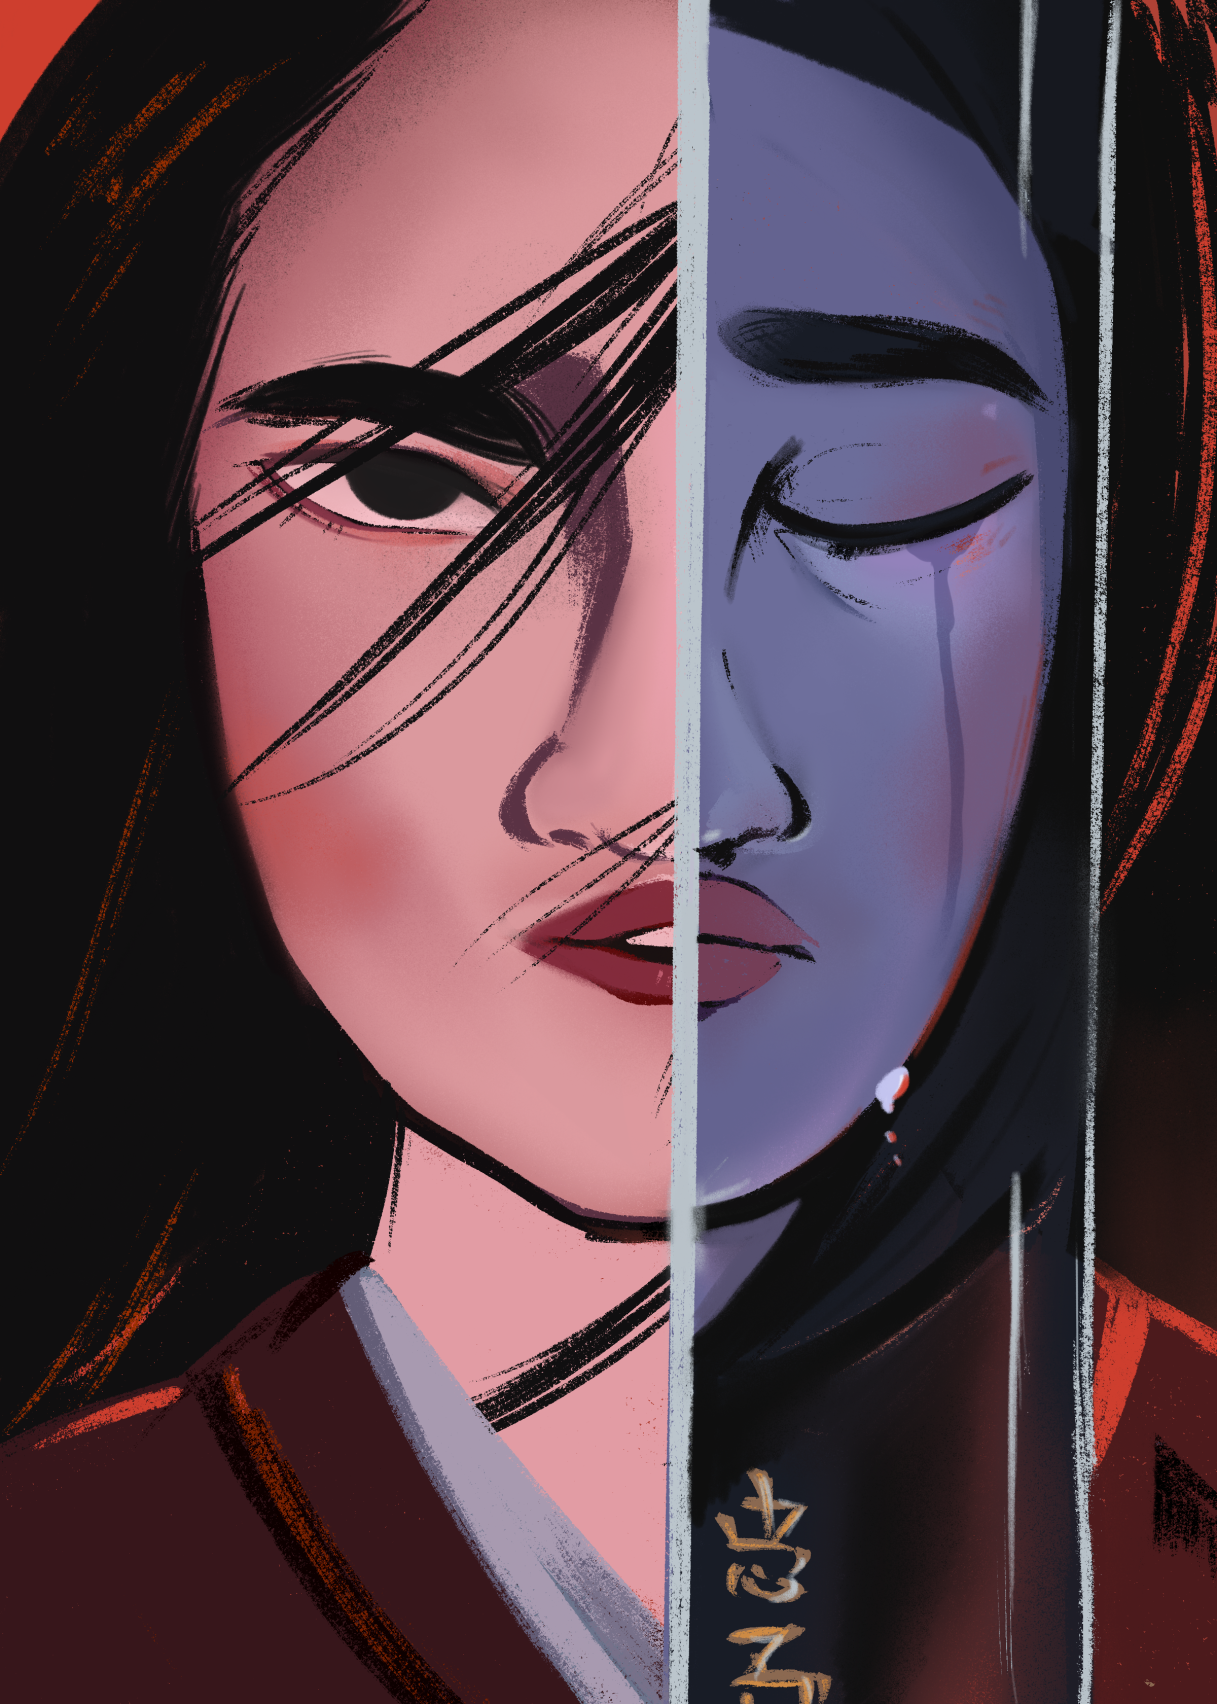 Opinion: With 'Mulan,' Disney is complicit in genocide